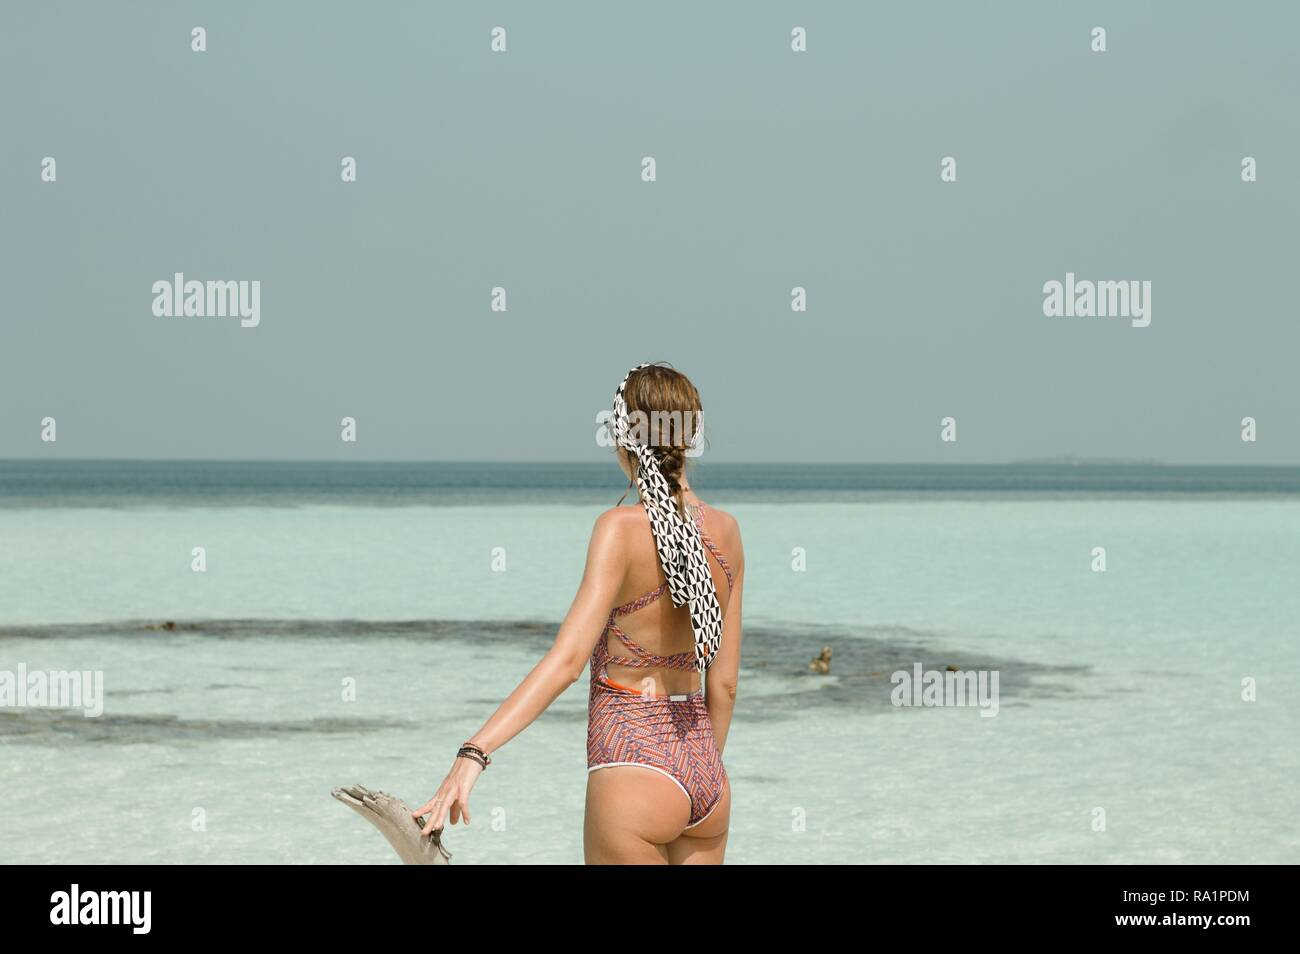 Young blonde girl with a violet swimsuit in a desert island (Ari Atoll, Maldives) - Stock Image